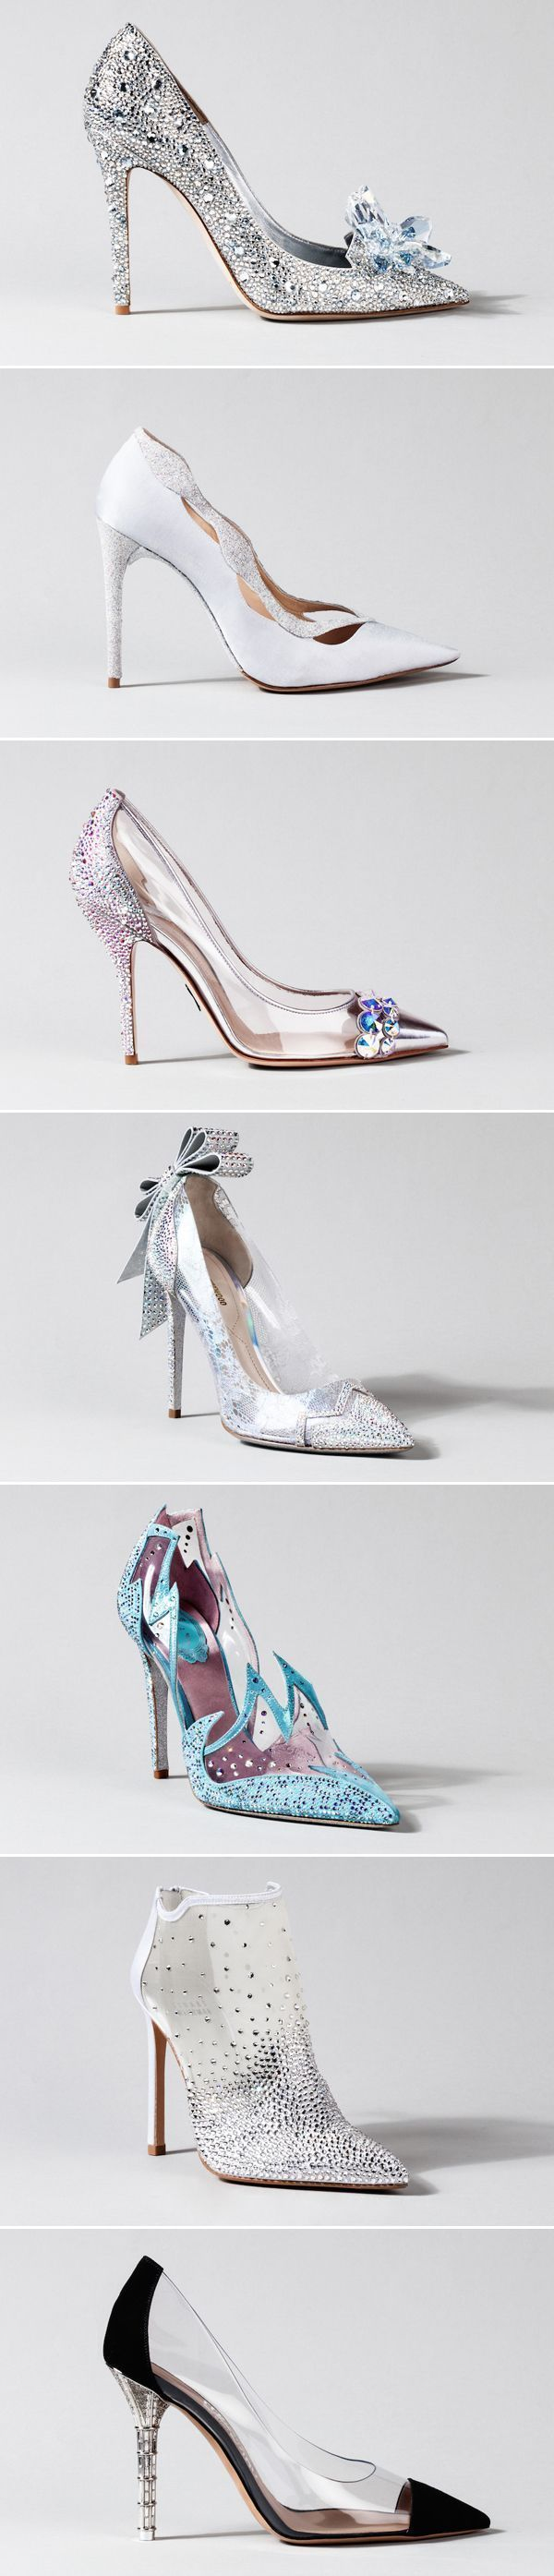 15 Stunning CinderellaInspired Wedding Shoes The Glass